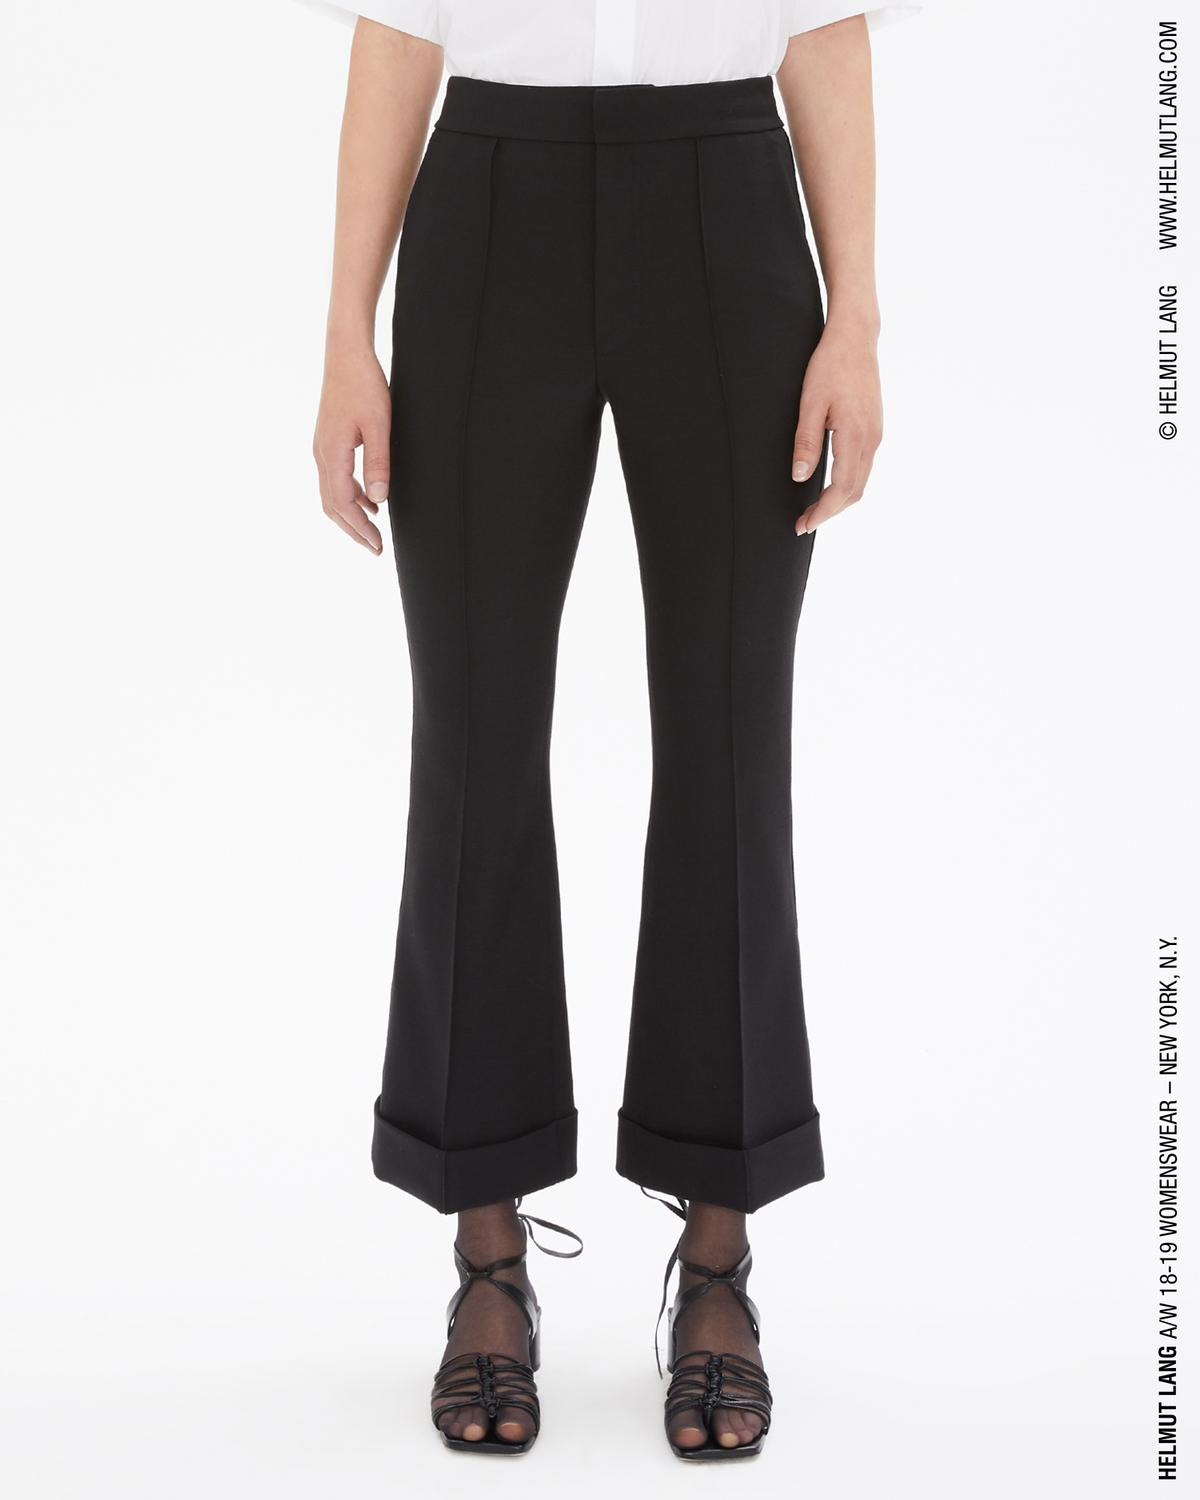 SPONGY WOOL FLARE PANT